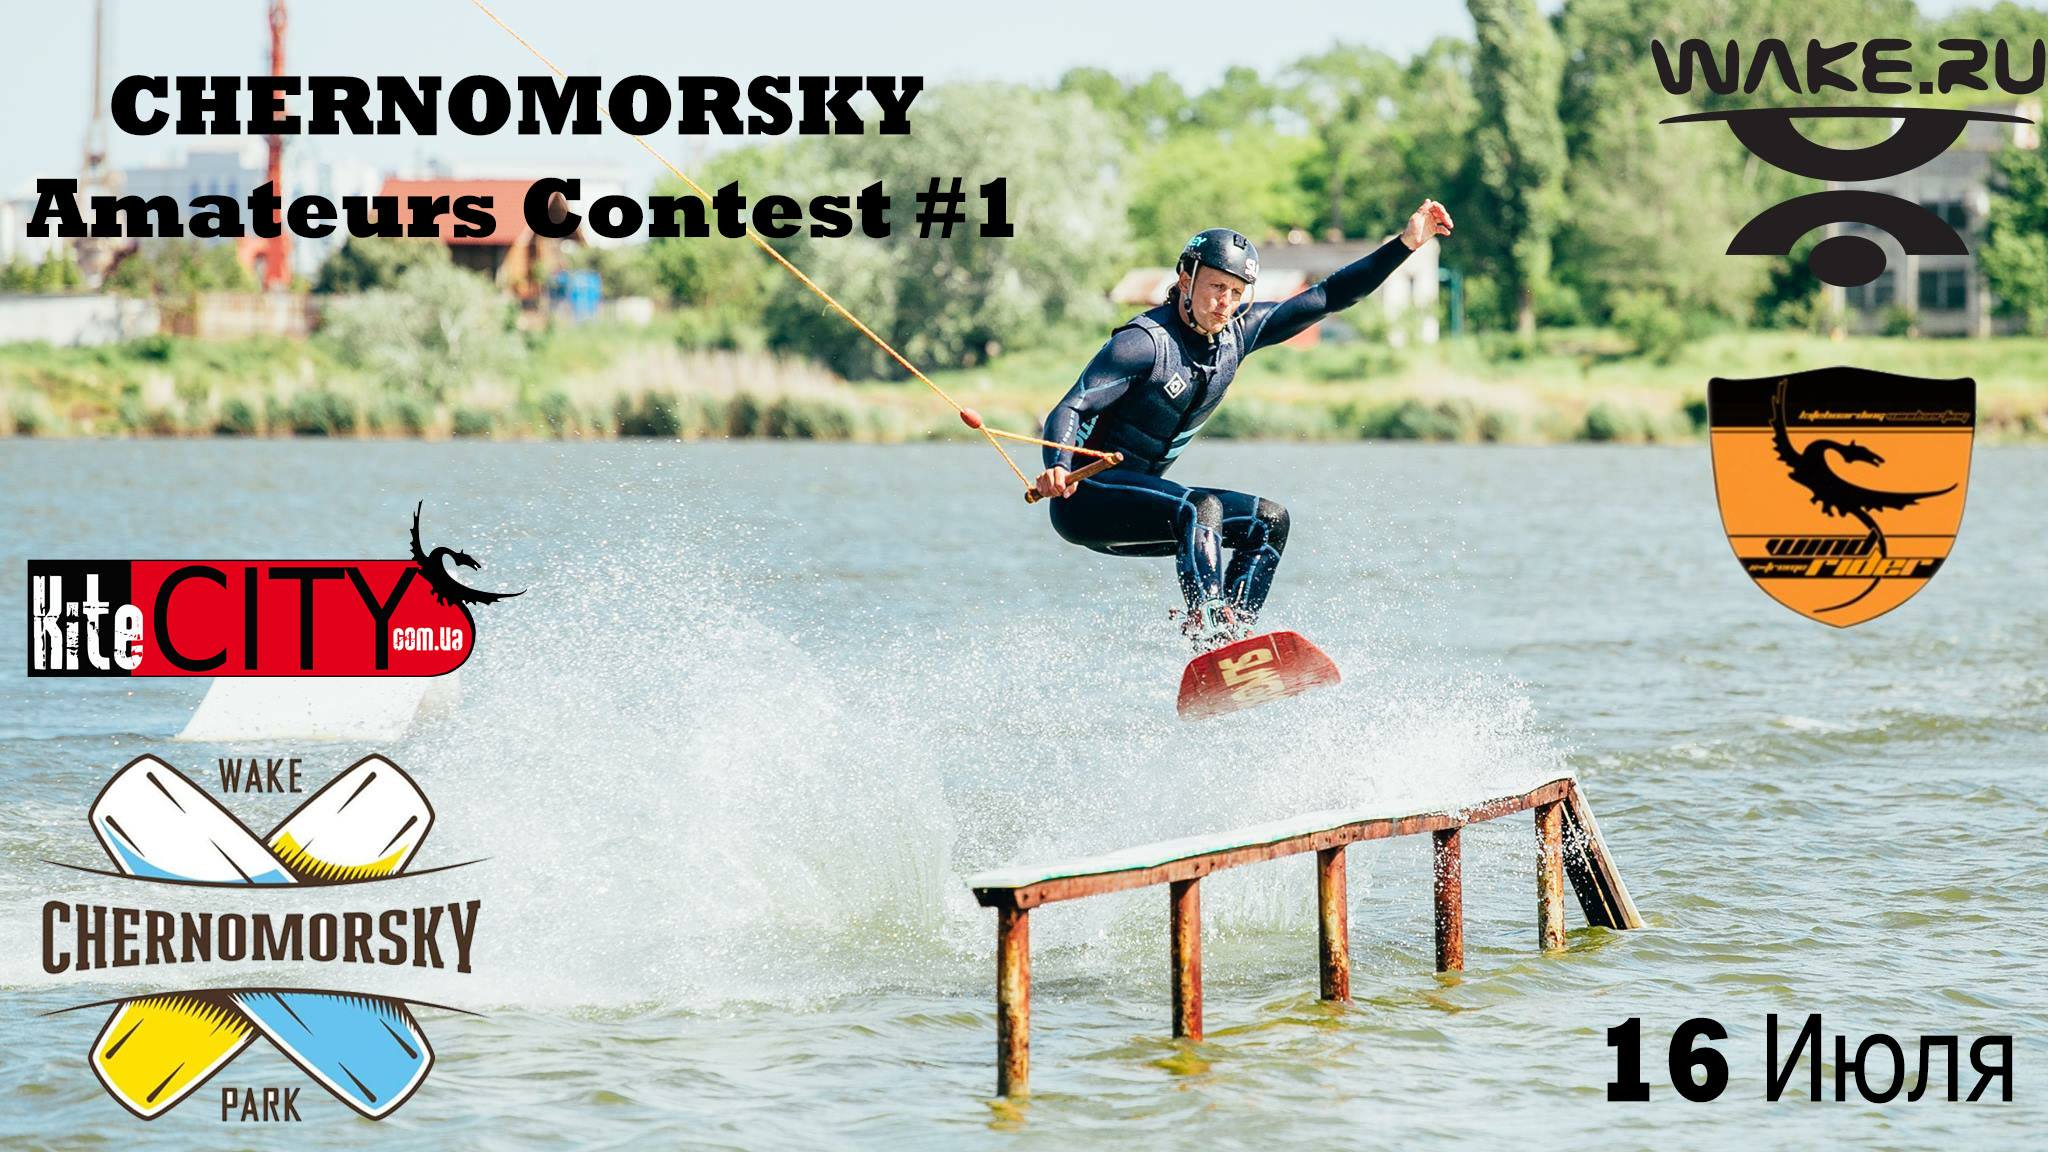 Chernomorskiy Amateurs contest #1